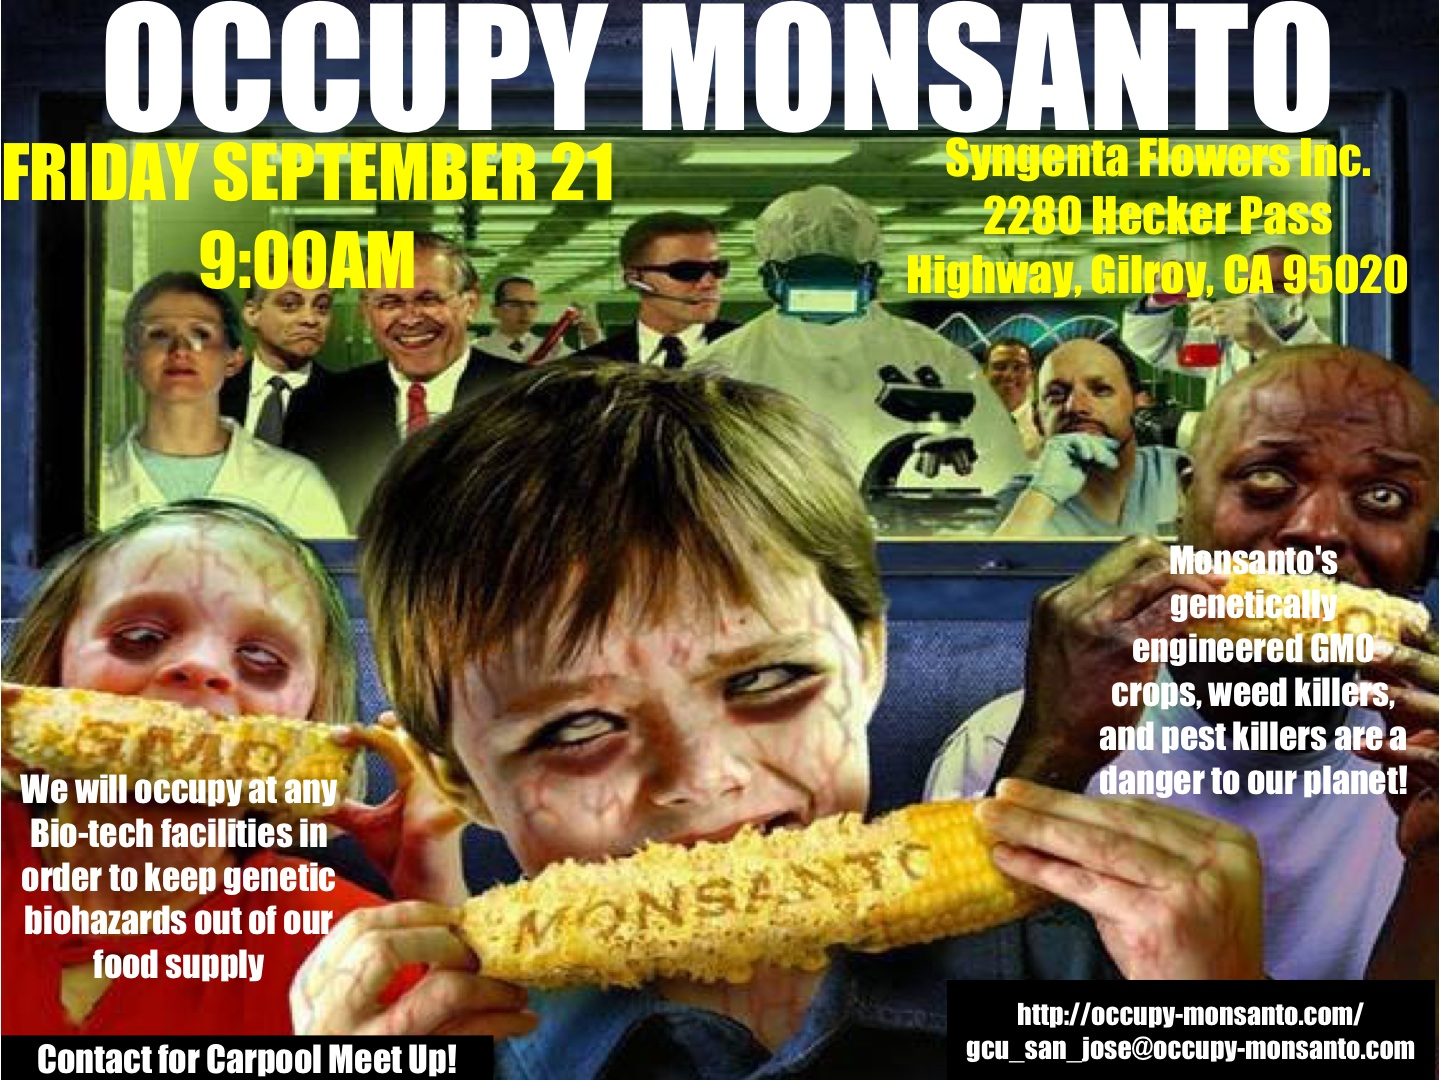 OccupyMonsantoFlier Gilroy Occupy Syngenta! Gilroy, CA, 9:00AM, 9/21 Syngenta Protest Occupy Monsanto Gilroy GCU Demonstration Decontamination Event California CA Activism